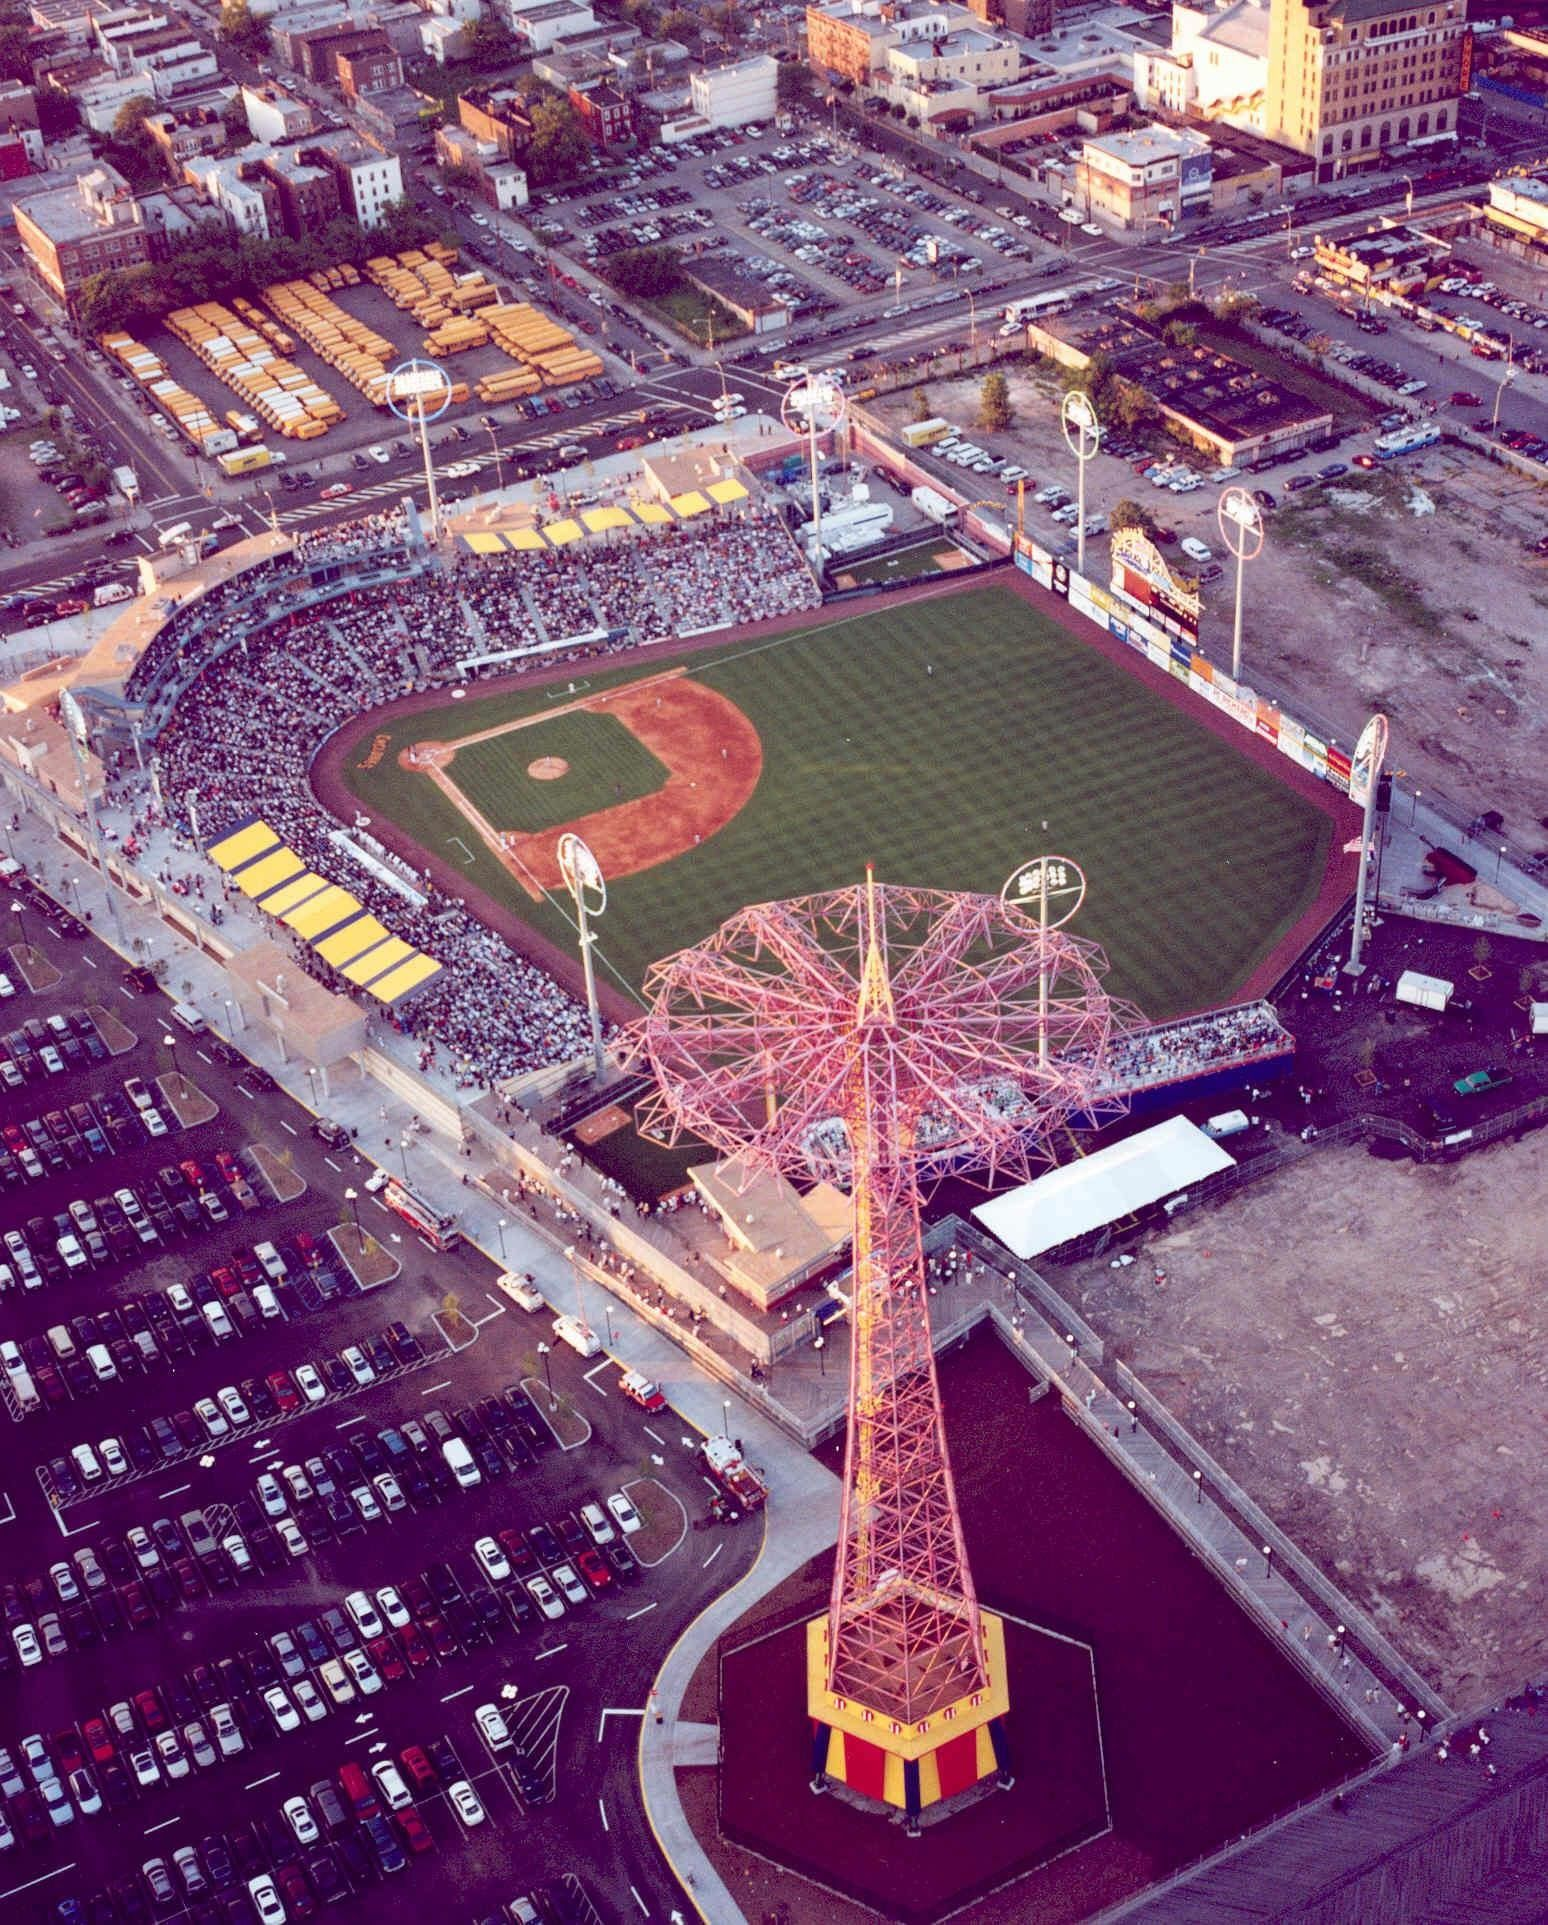 MCU Park, Home of The Brooklyn Cyclones. Image: David Torres